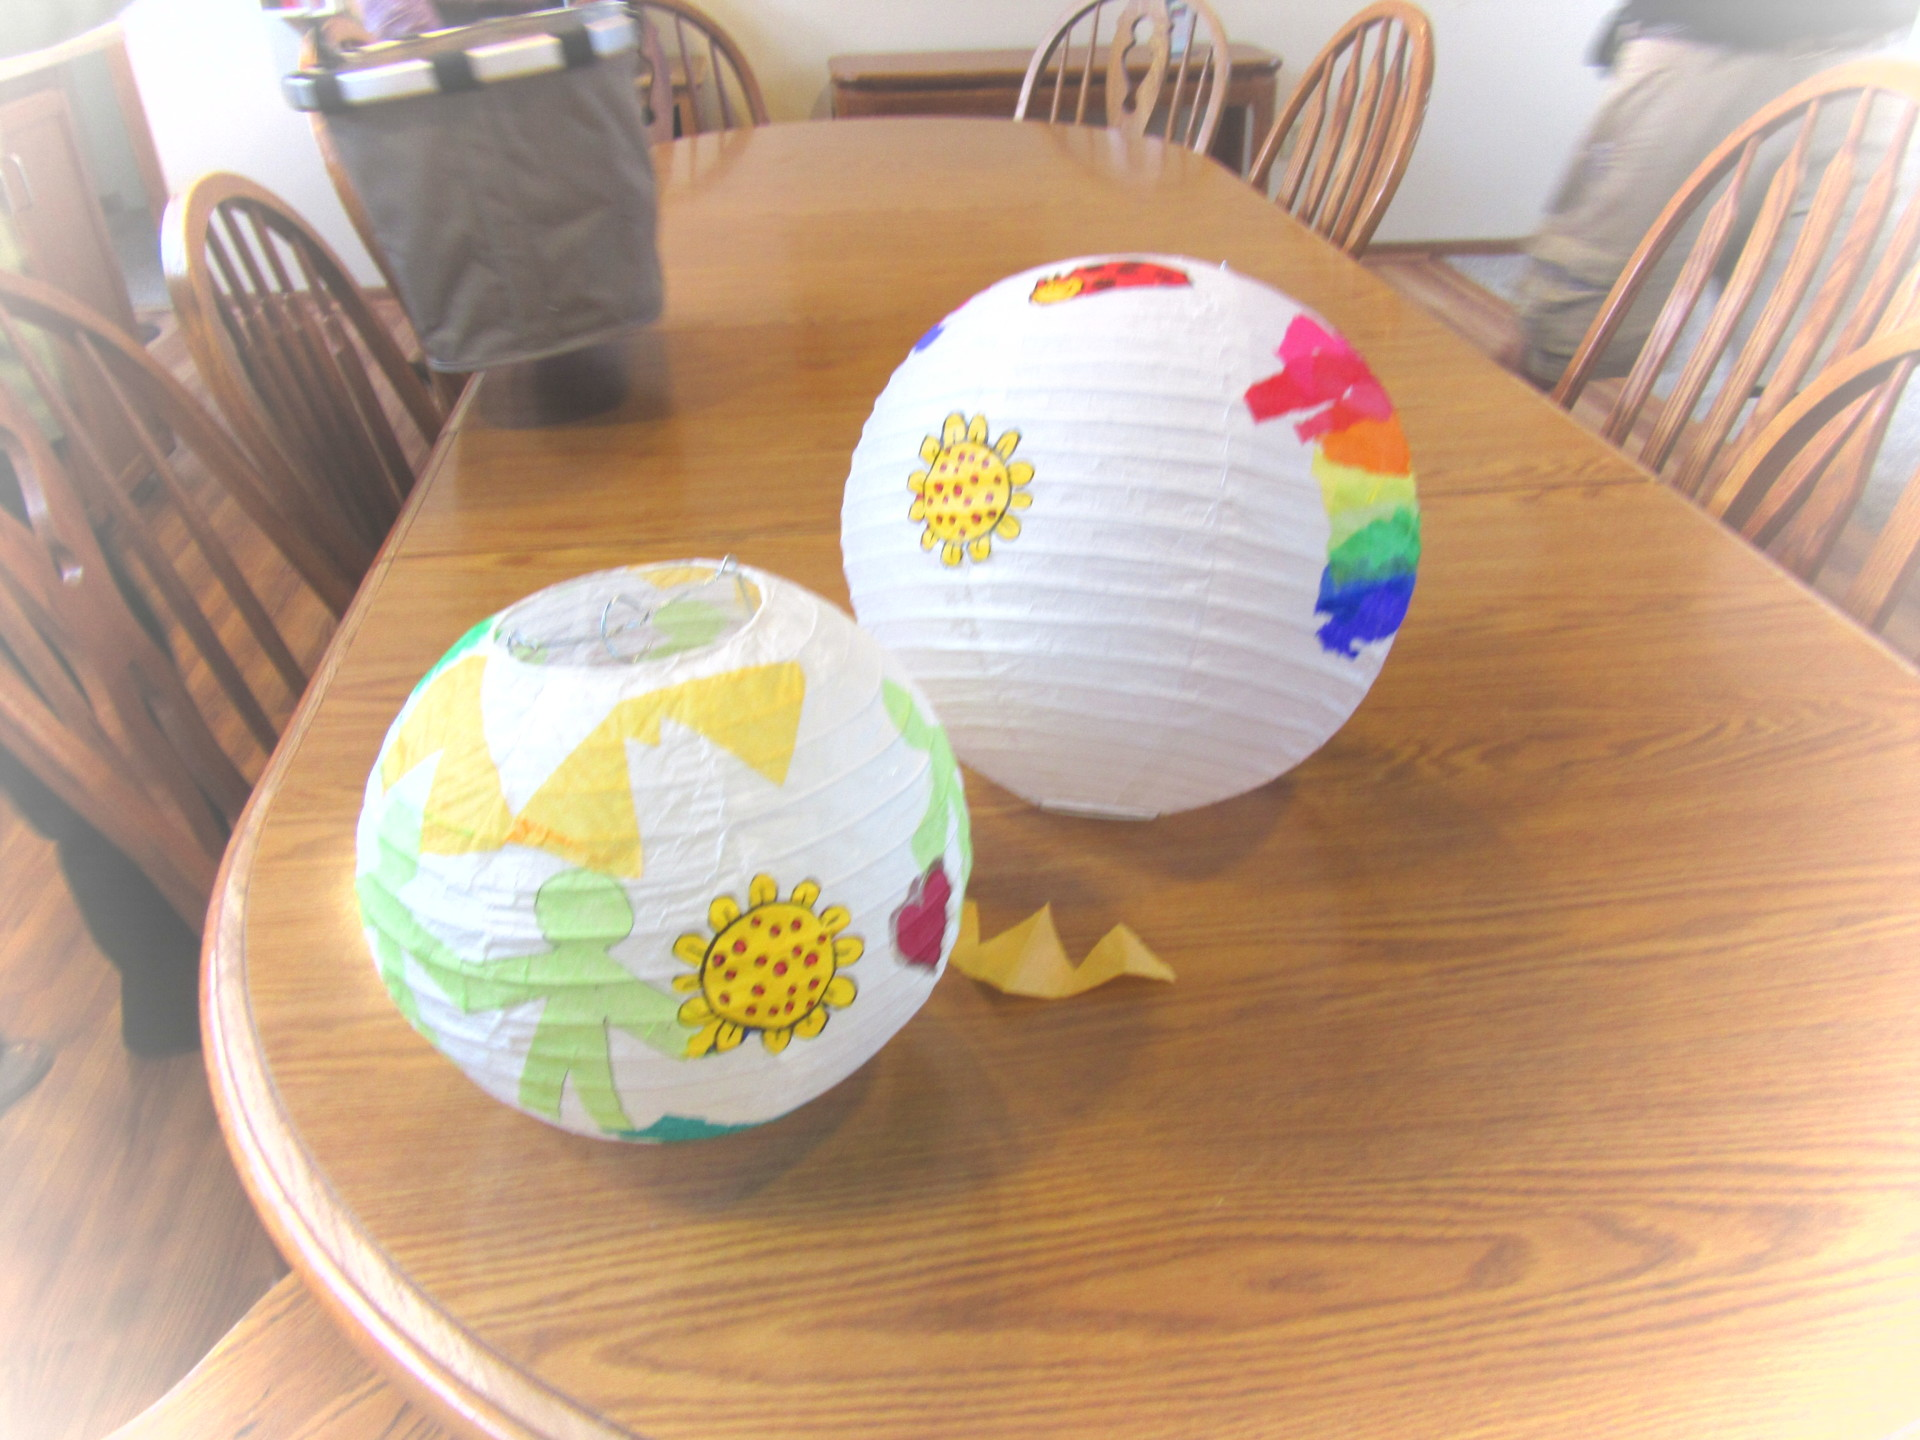 For the right brain among us....creating colorful lanterns expressing love of the earth